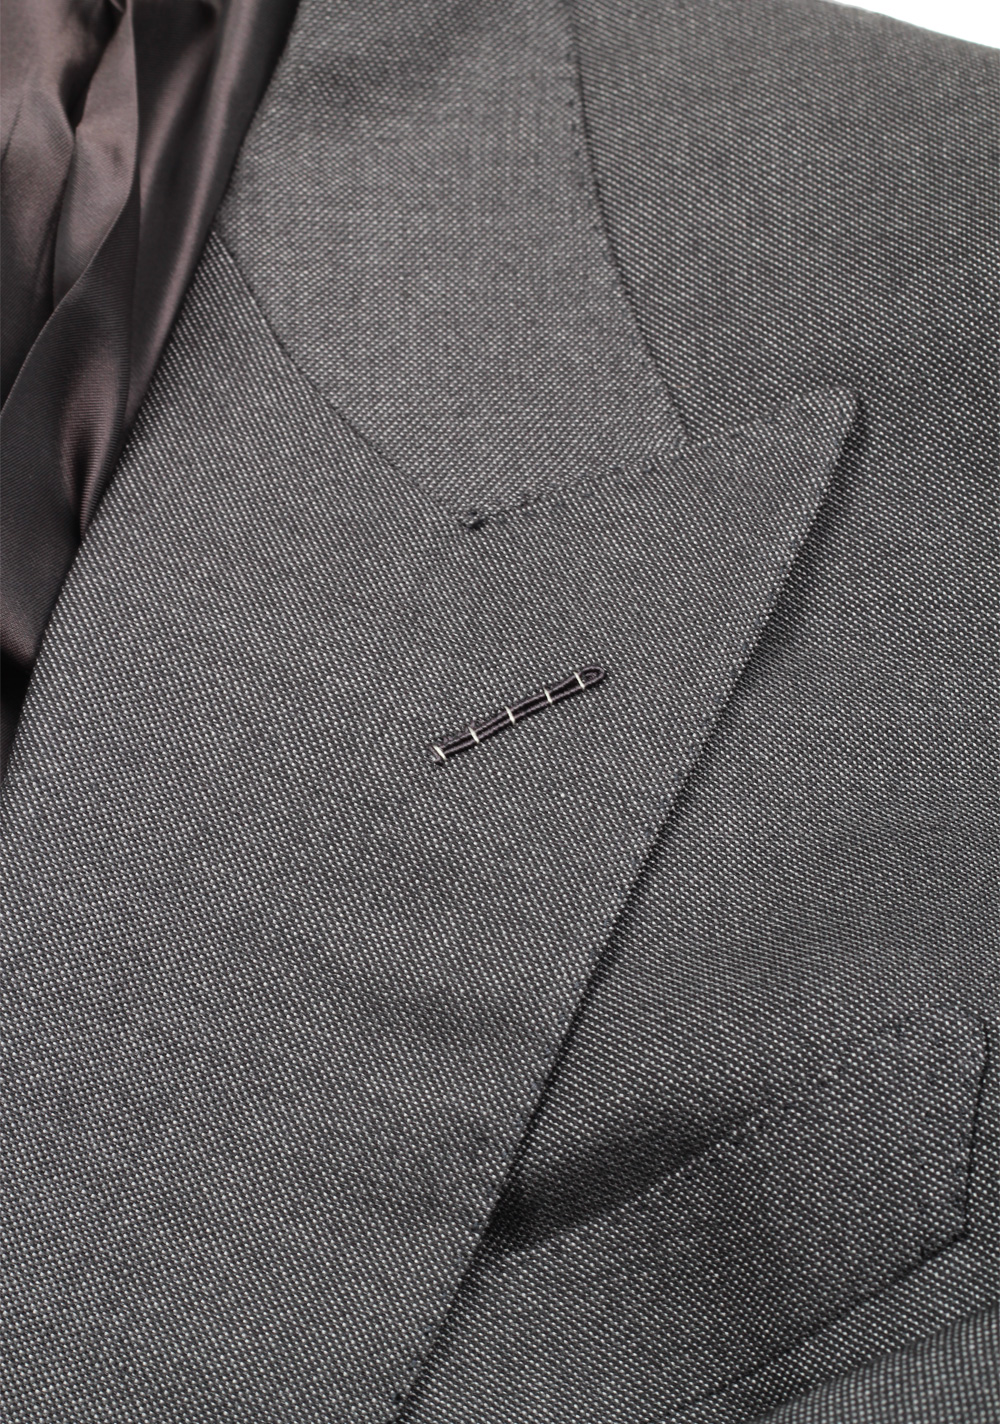 TOM FORD Shelton Gray Double Breasted Suit Size 48 / 38R U.S. | Costume Limité